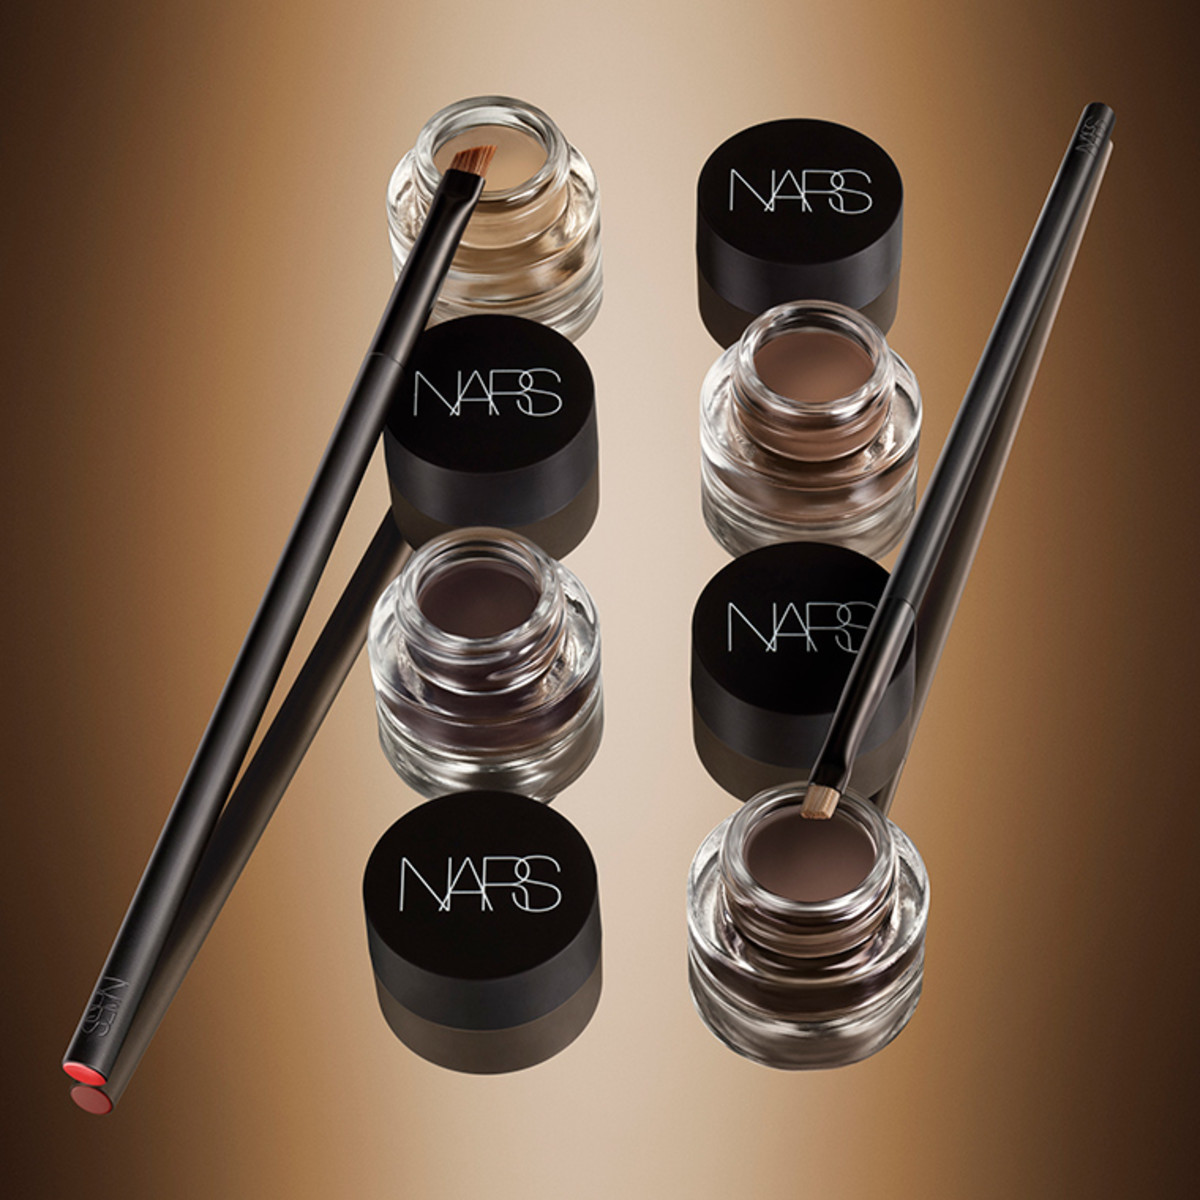 Nars Audacious Fall 2016 collection: Brow Defining Cream and Brow Defining Brush